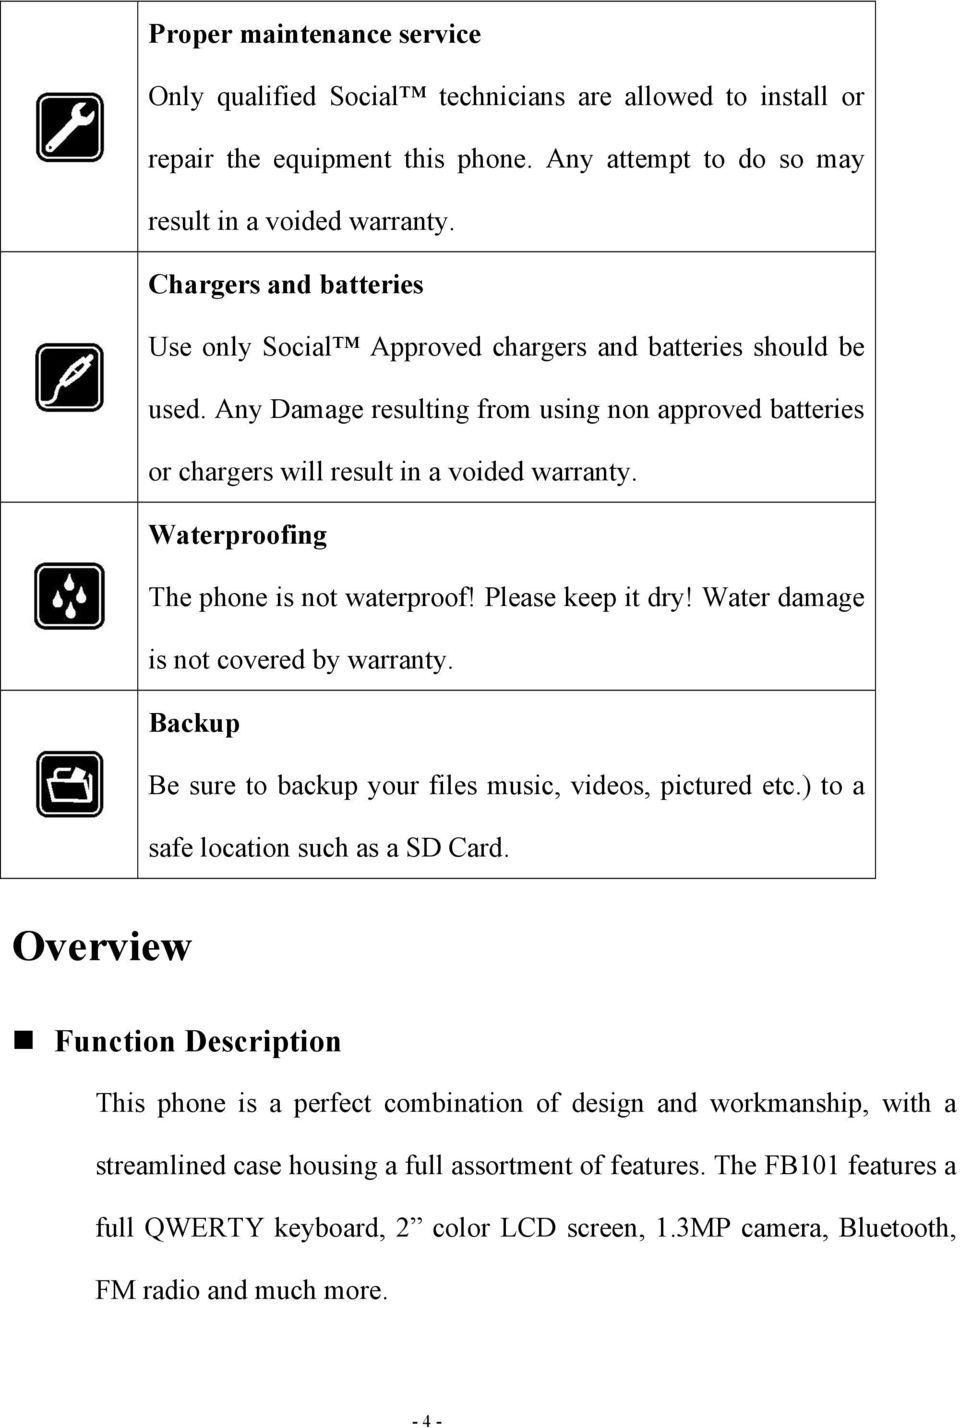 Waterproofing The phone is not waterproof! Please keep it dry! Water damage is not covered by warranty. Backup Be sure to backup your files music, videos, pictured etc.